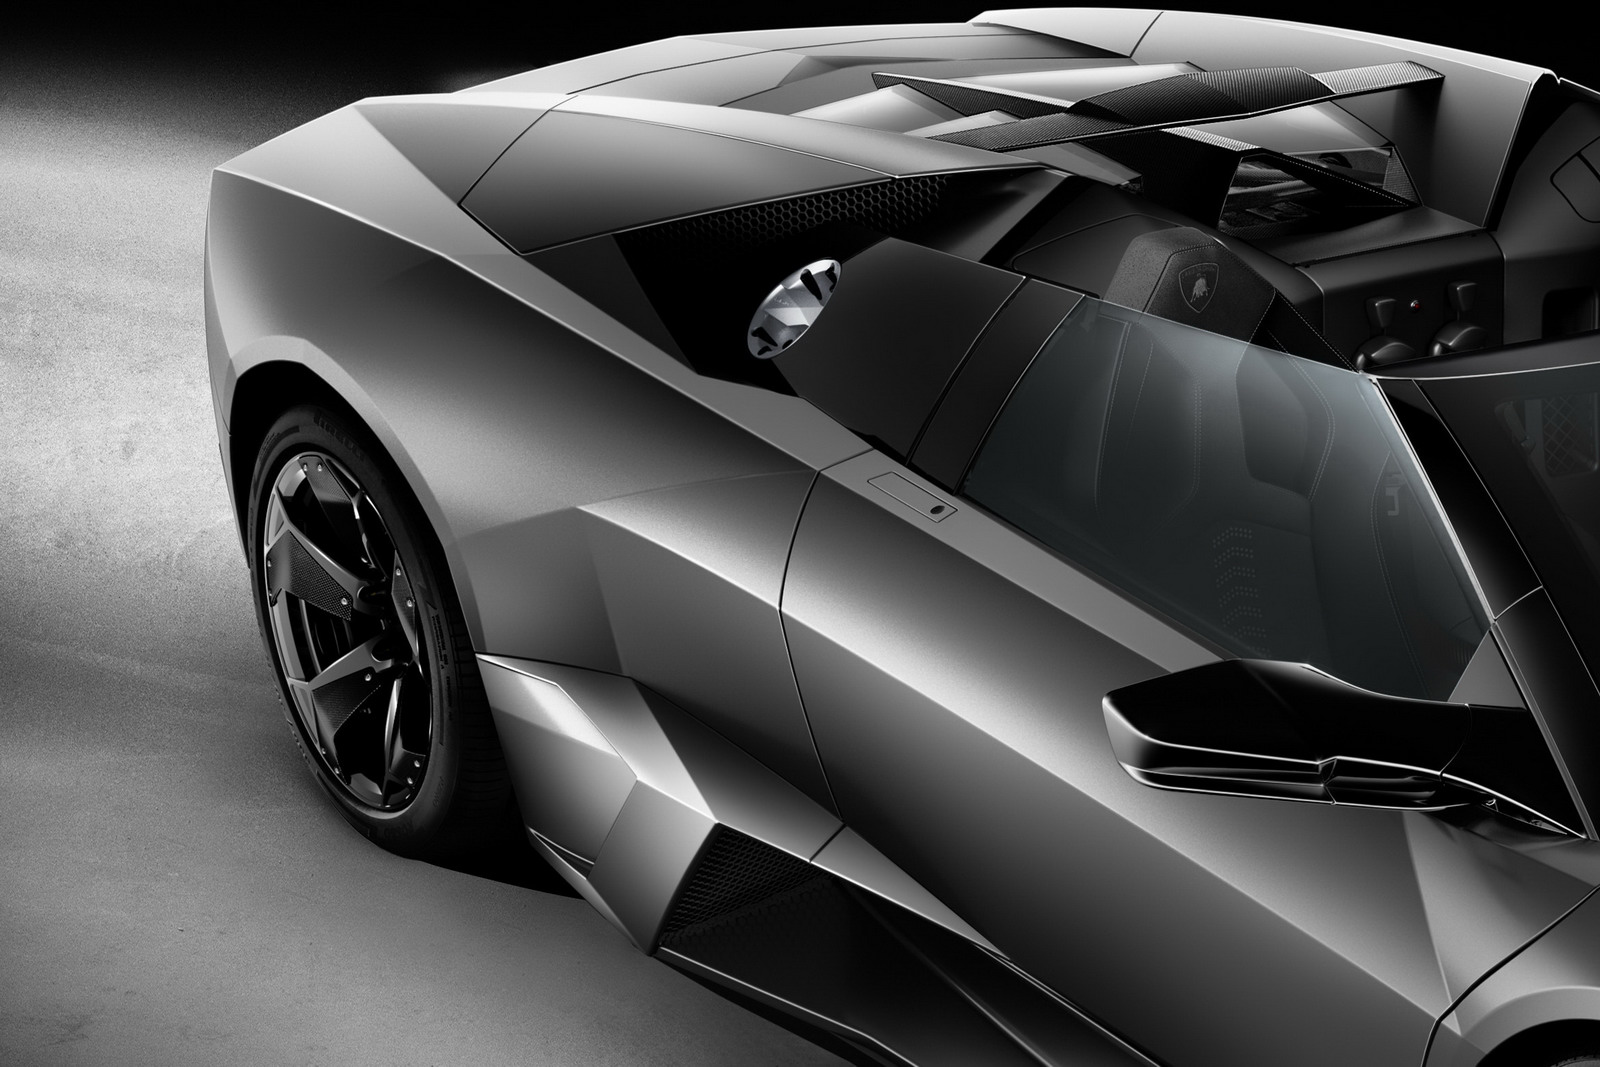 Lamborghini Reventon 2012 Riding Cars Engine Information